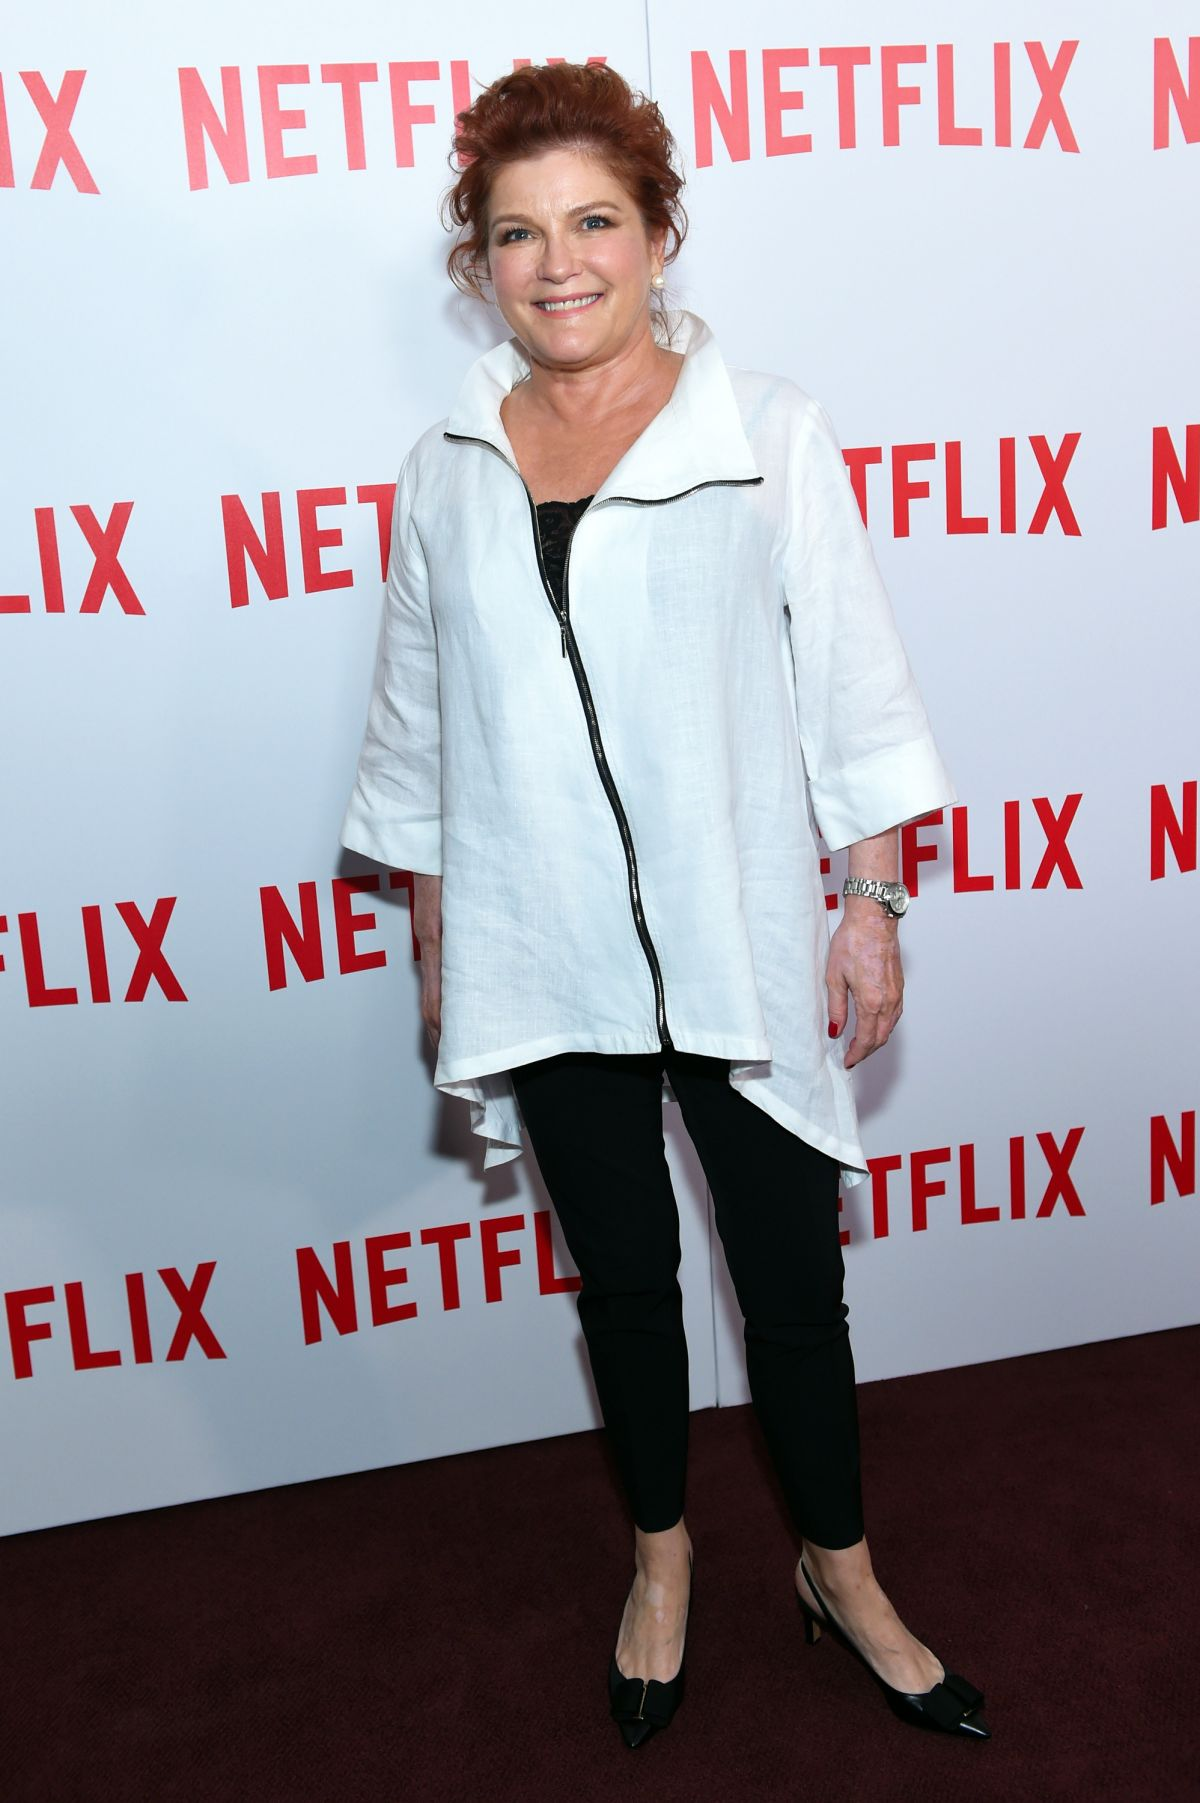 KATE MULGREW at Orange is the New Black Screening in New York